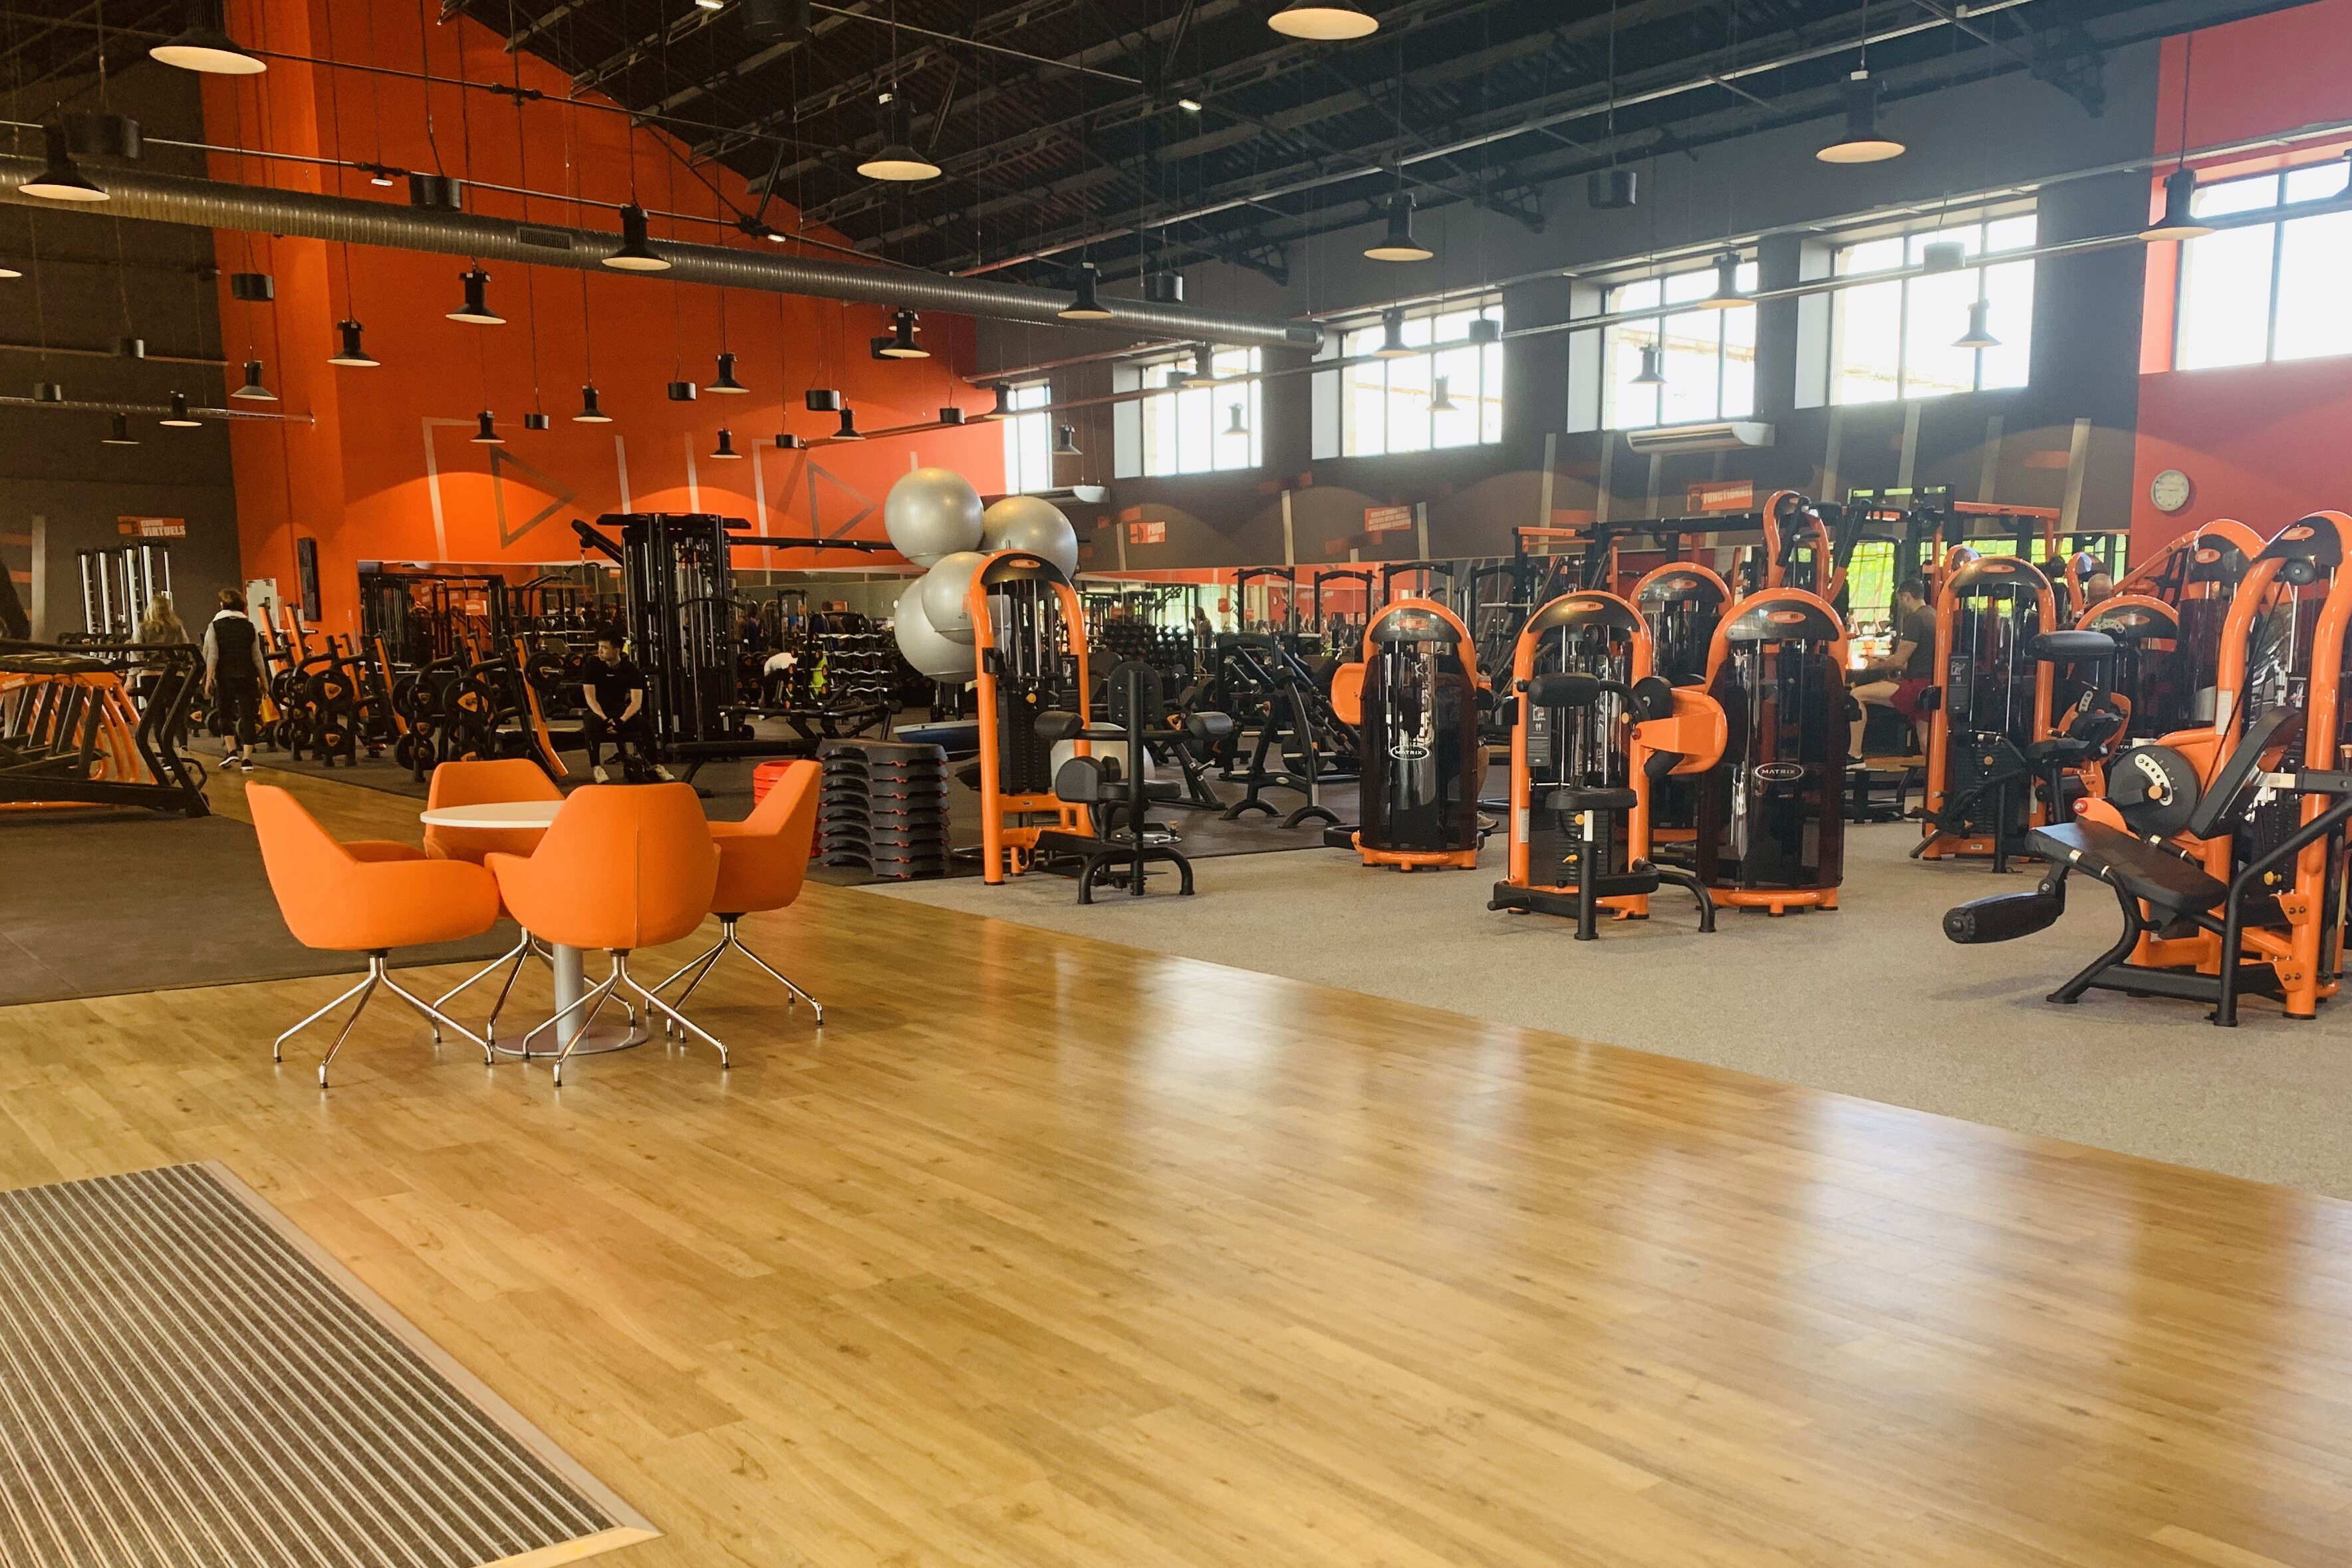 Basic Fit Gym Basic Fit Libourne Rue Chaperon Grangere